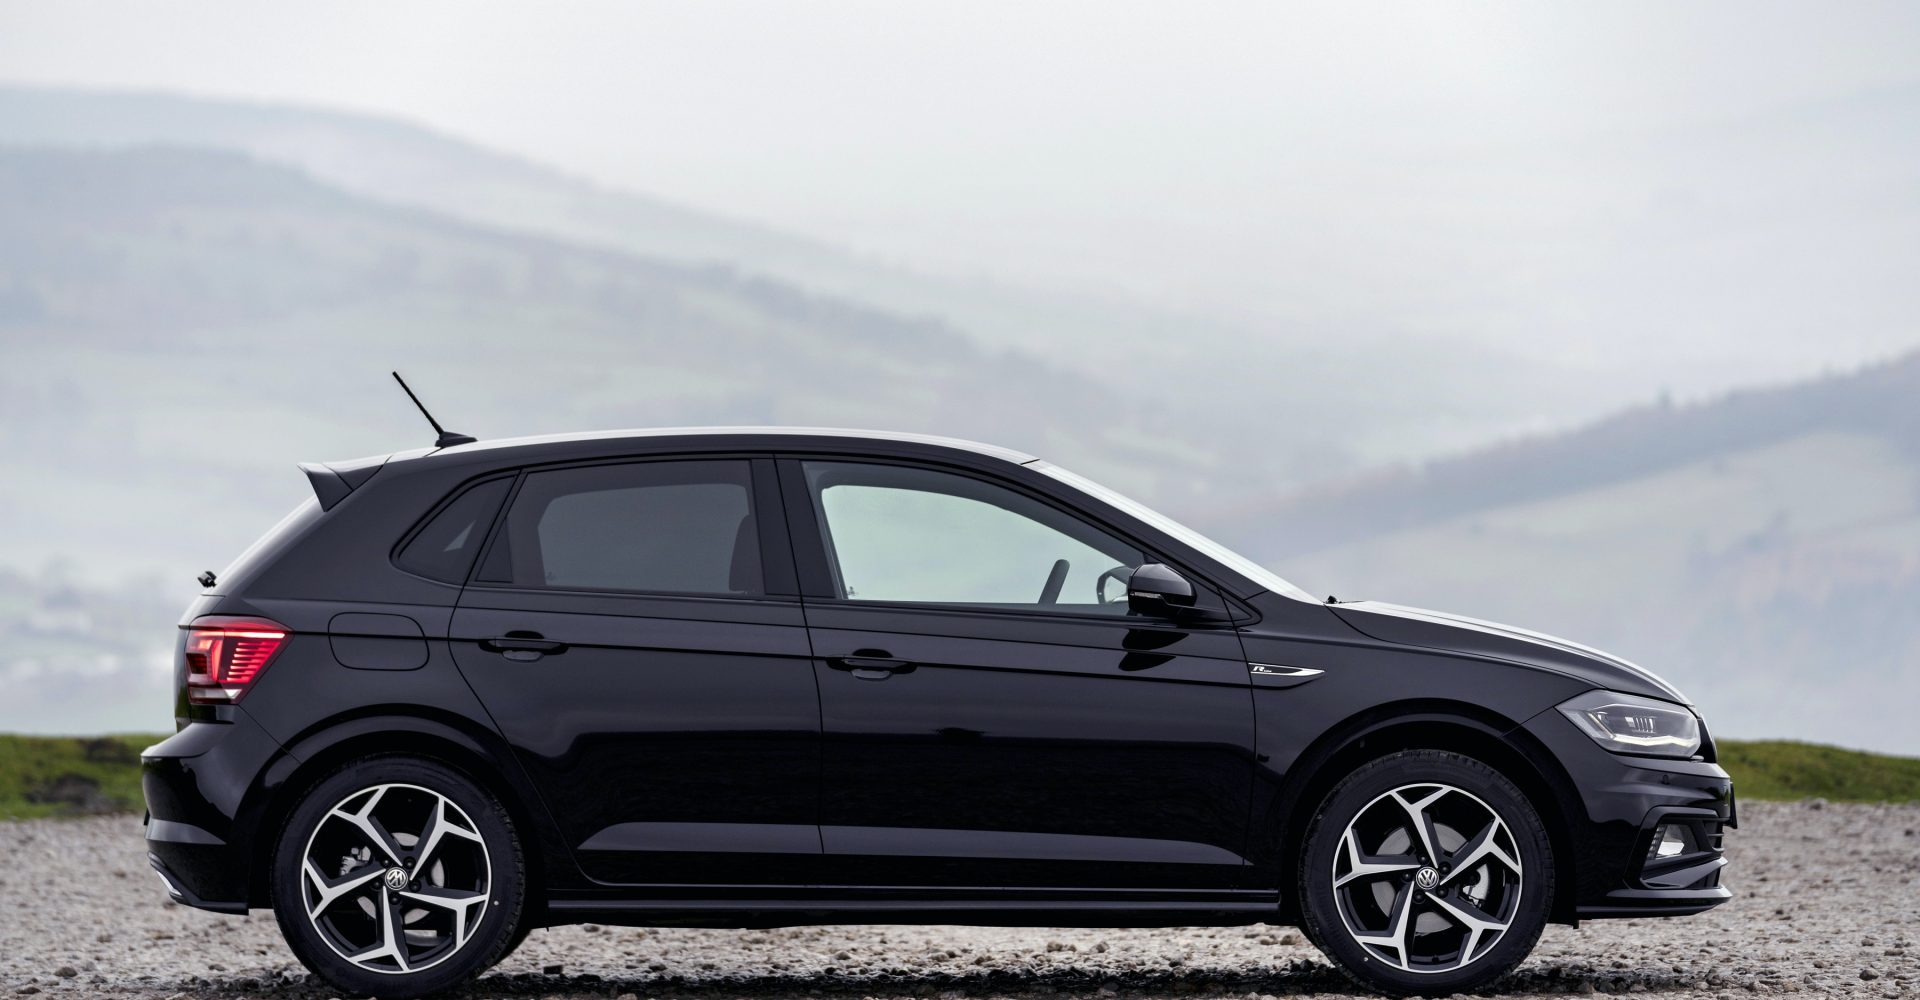 Black remains top car colour but white surges in popularity